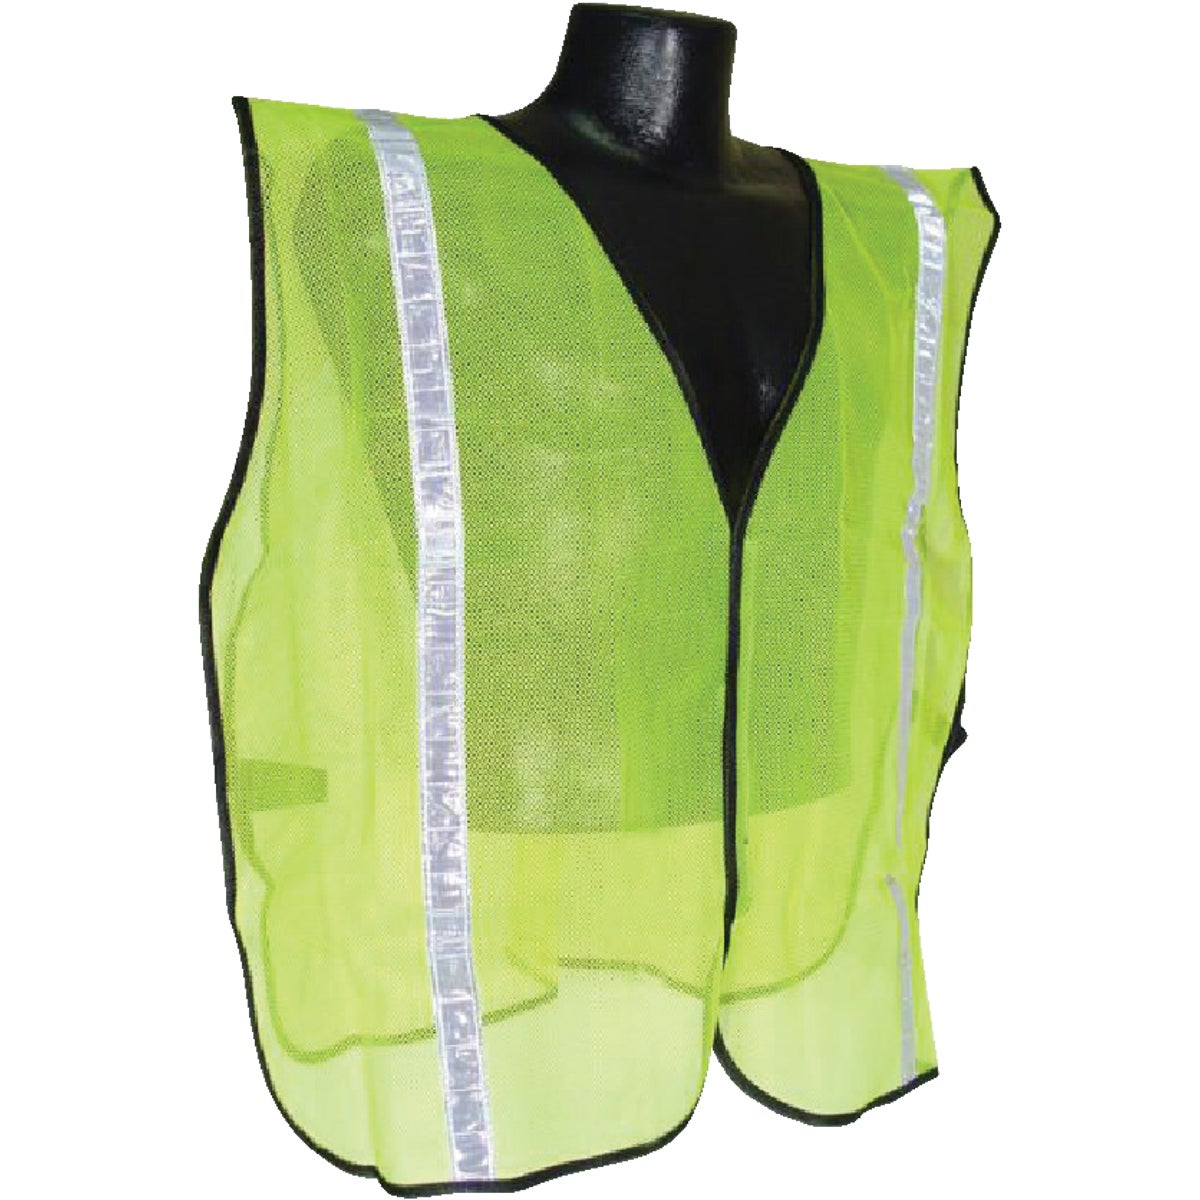 REFLECTIVE SAFETY VEST - 817890 by Msa Safety